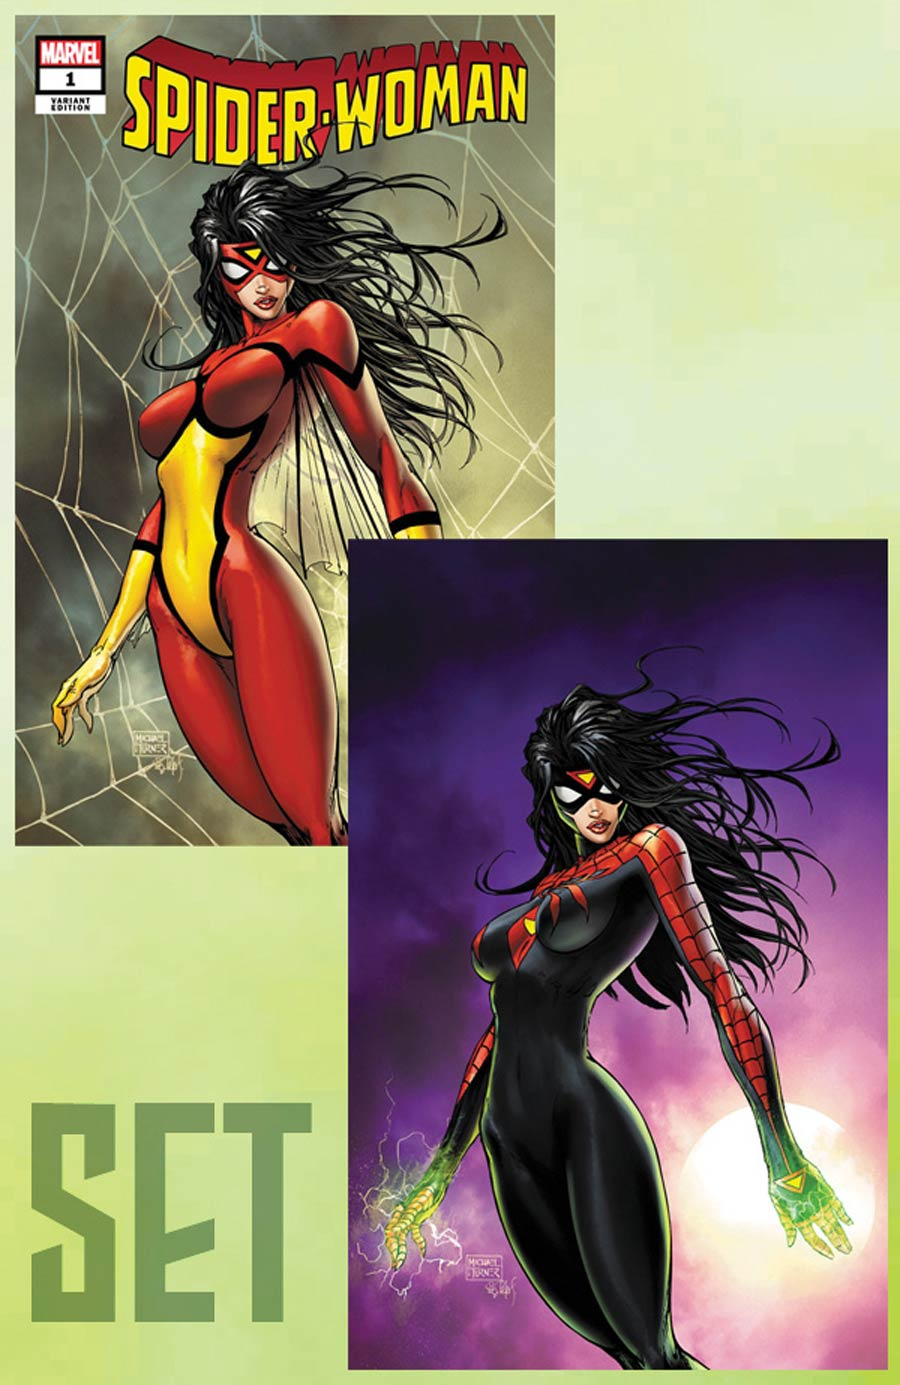 Spider-Woman Vol 7 #1 Limited Edition Michael Turner Aspen Variant Cover Set